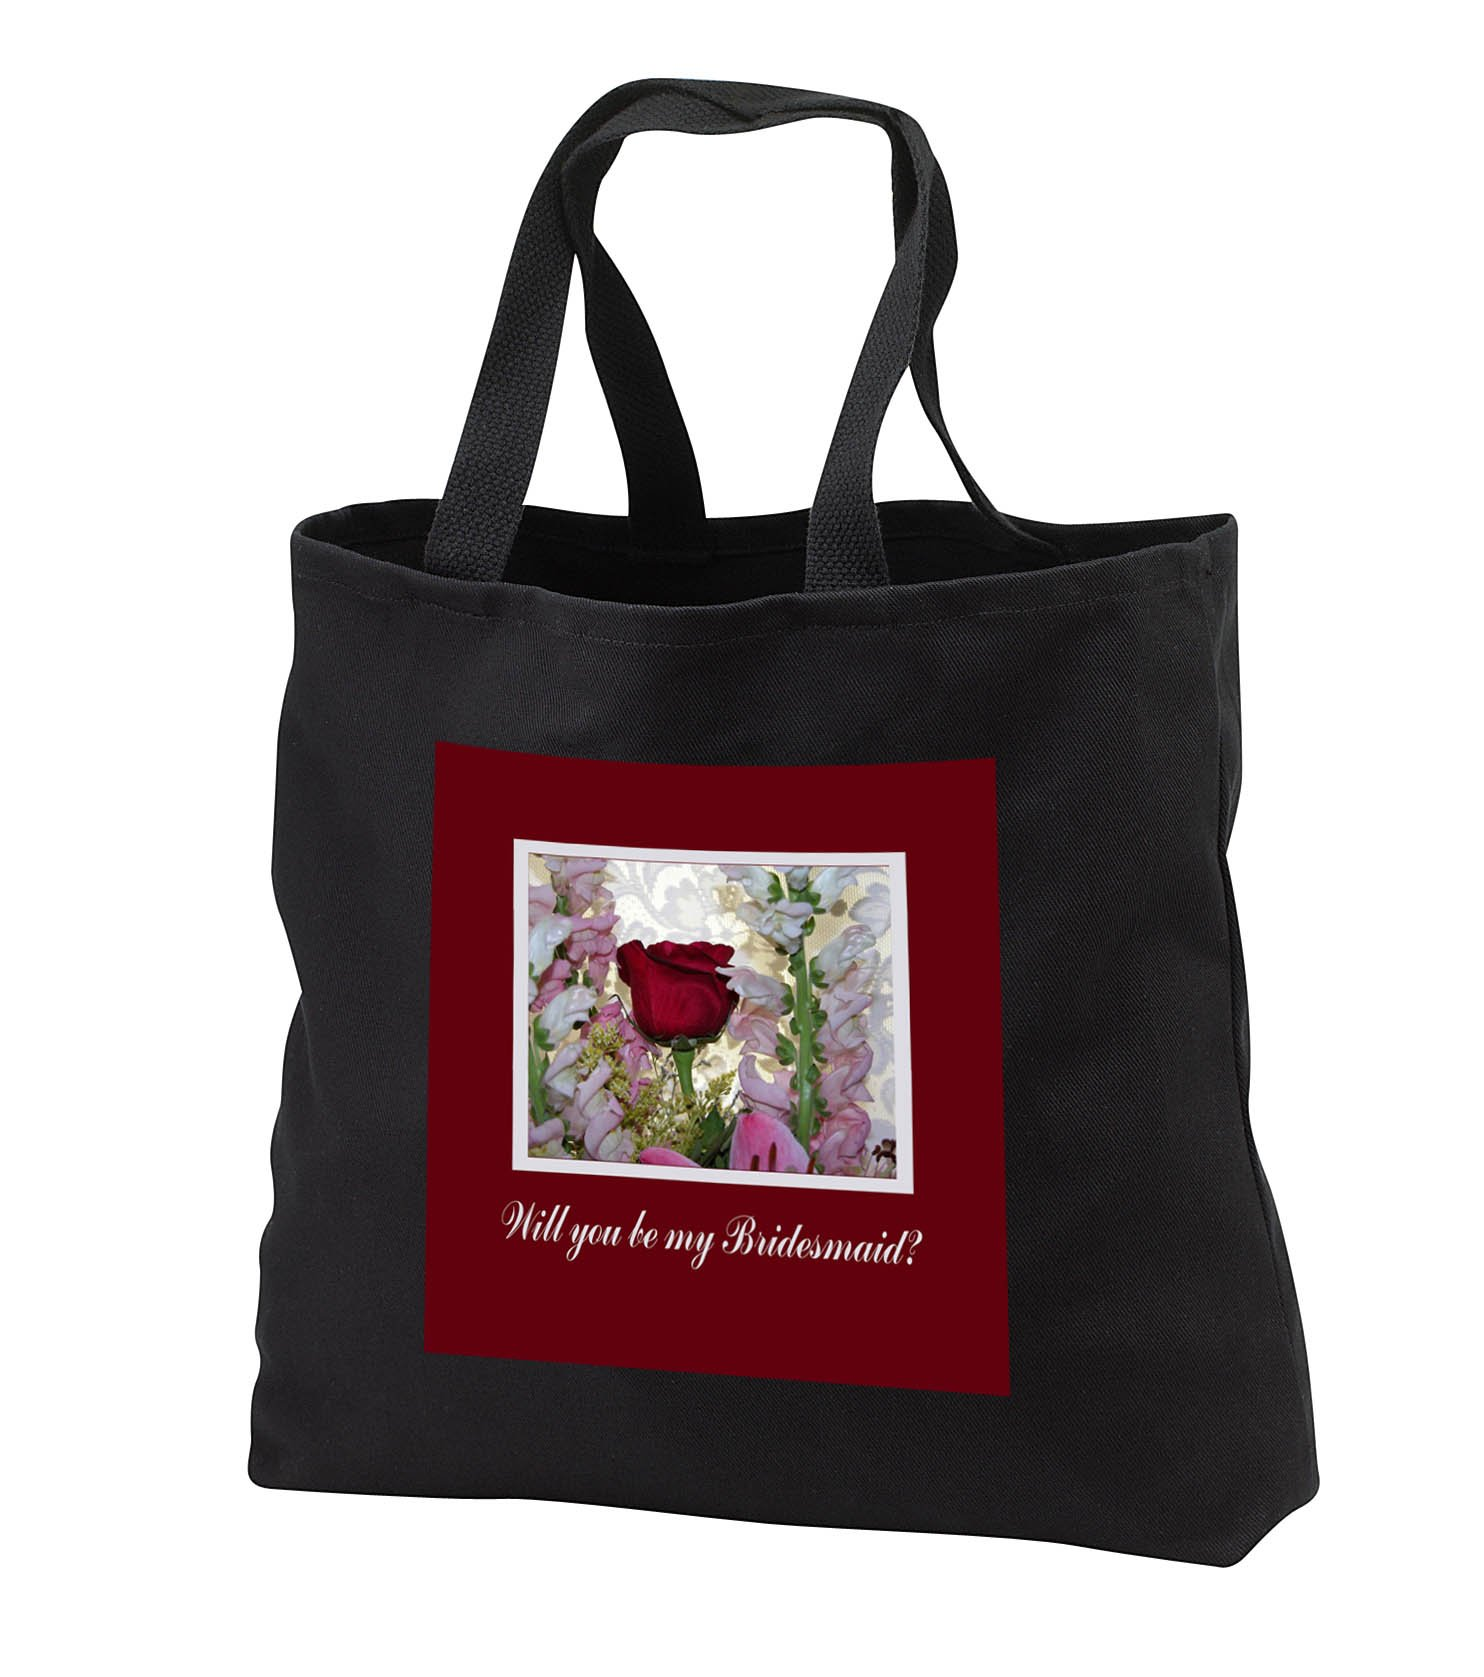 Beverly Turner Wedding Bridal Party Design - Bridesmaid Request, Roses, Gladiola, and Lilly Bouquet, Lace - Tote Bags - Black Tote Bag JUMBO 20w x 15h x 5d (tb_282206_3)